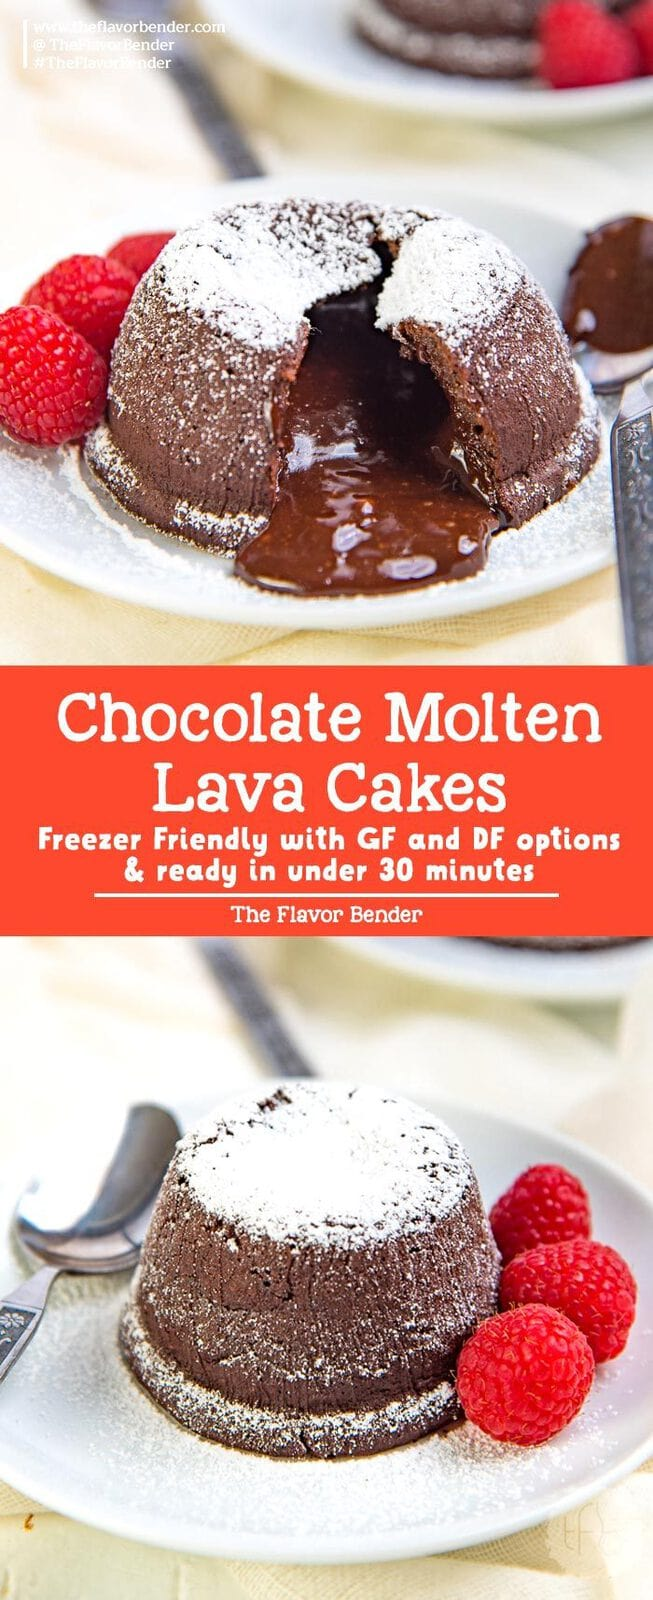 Chocolate Molten lava cake recipe - these molten lava cakes are ready in under 30 minutes with only a 15 minute prep time. Easy, delicious and impressive desserts that can be frozen ahead of time! With gluten free options.#ChocolateMoltenLavaCake #ValentinesDay #EasyDessert #GlutenFree